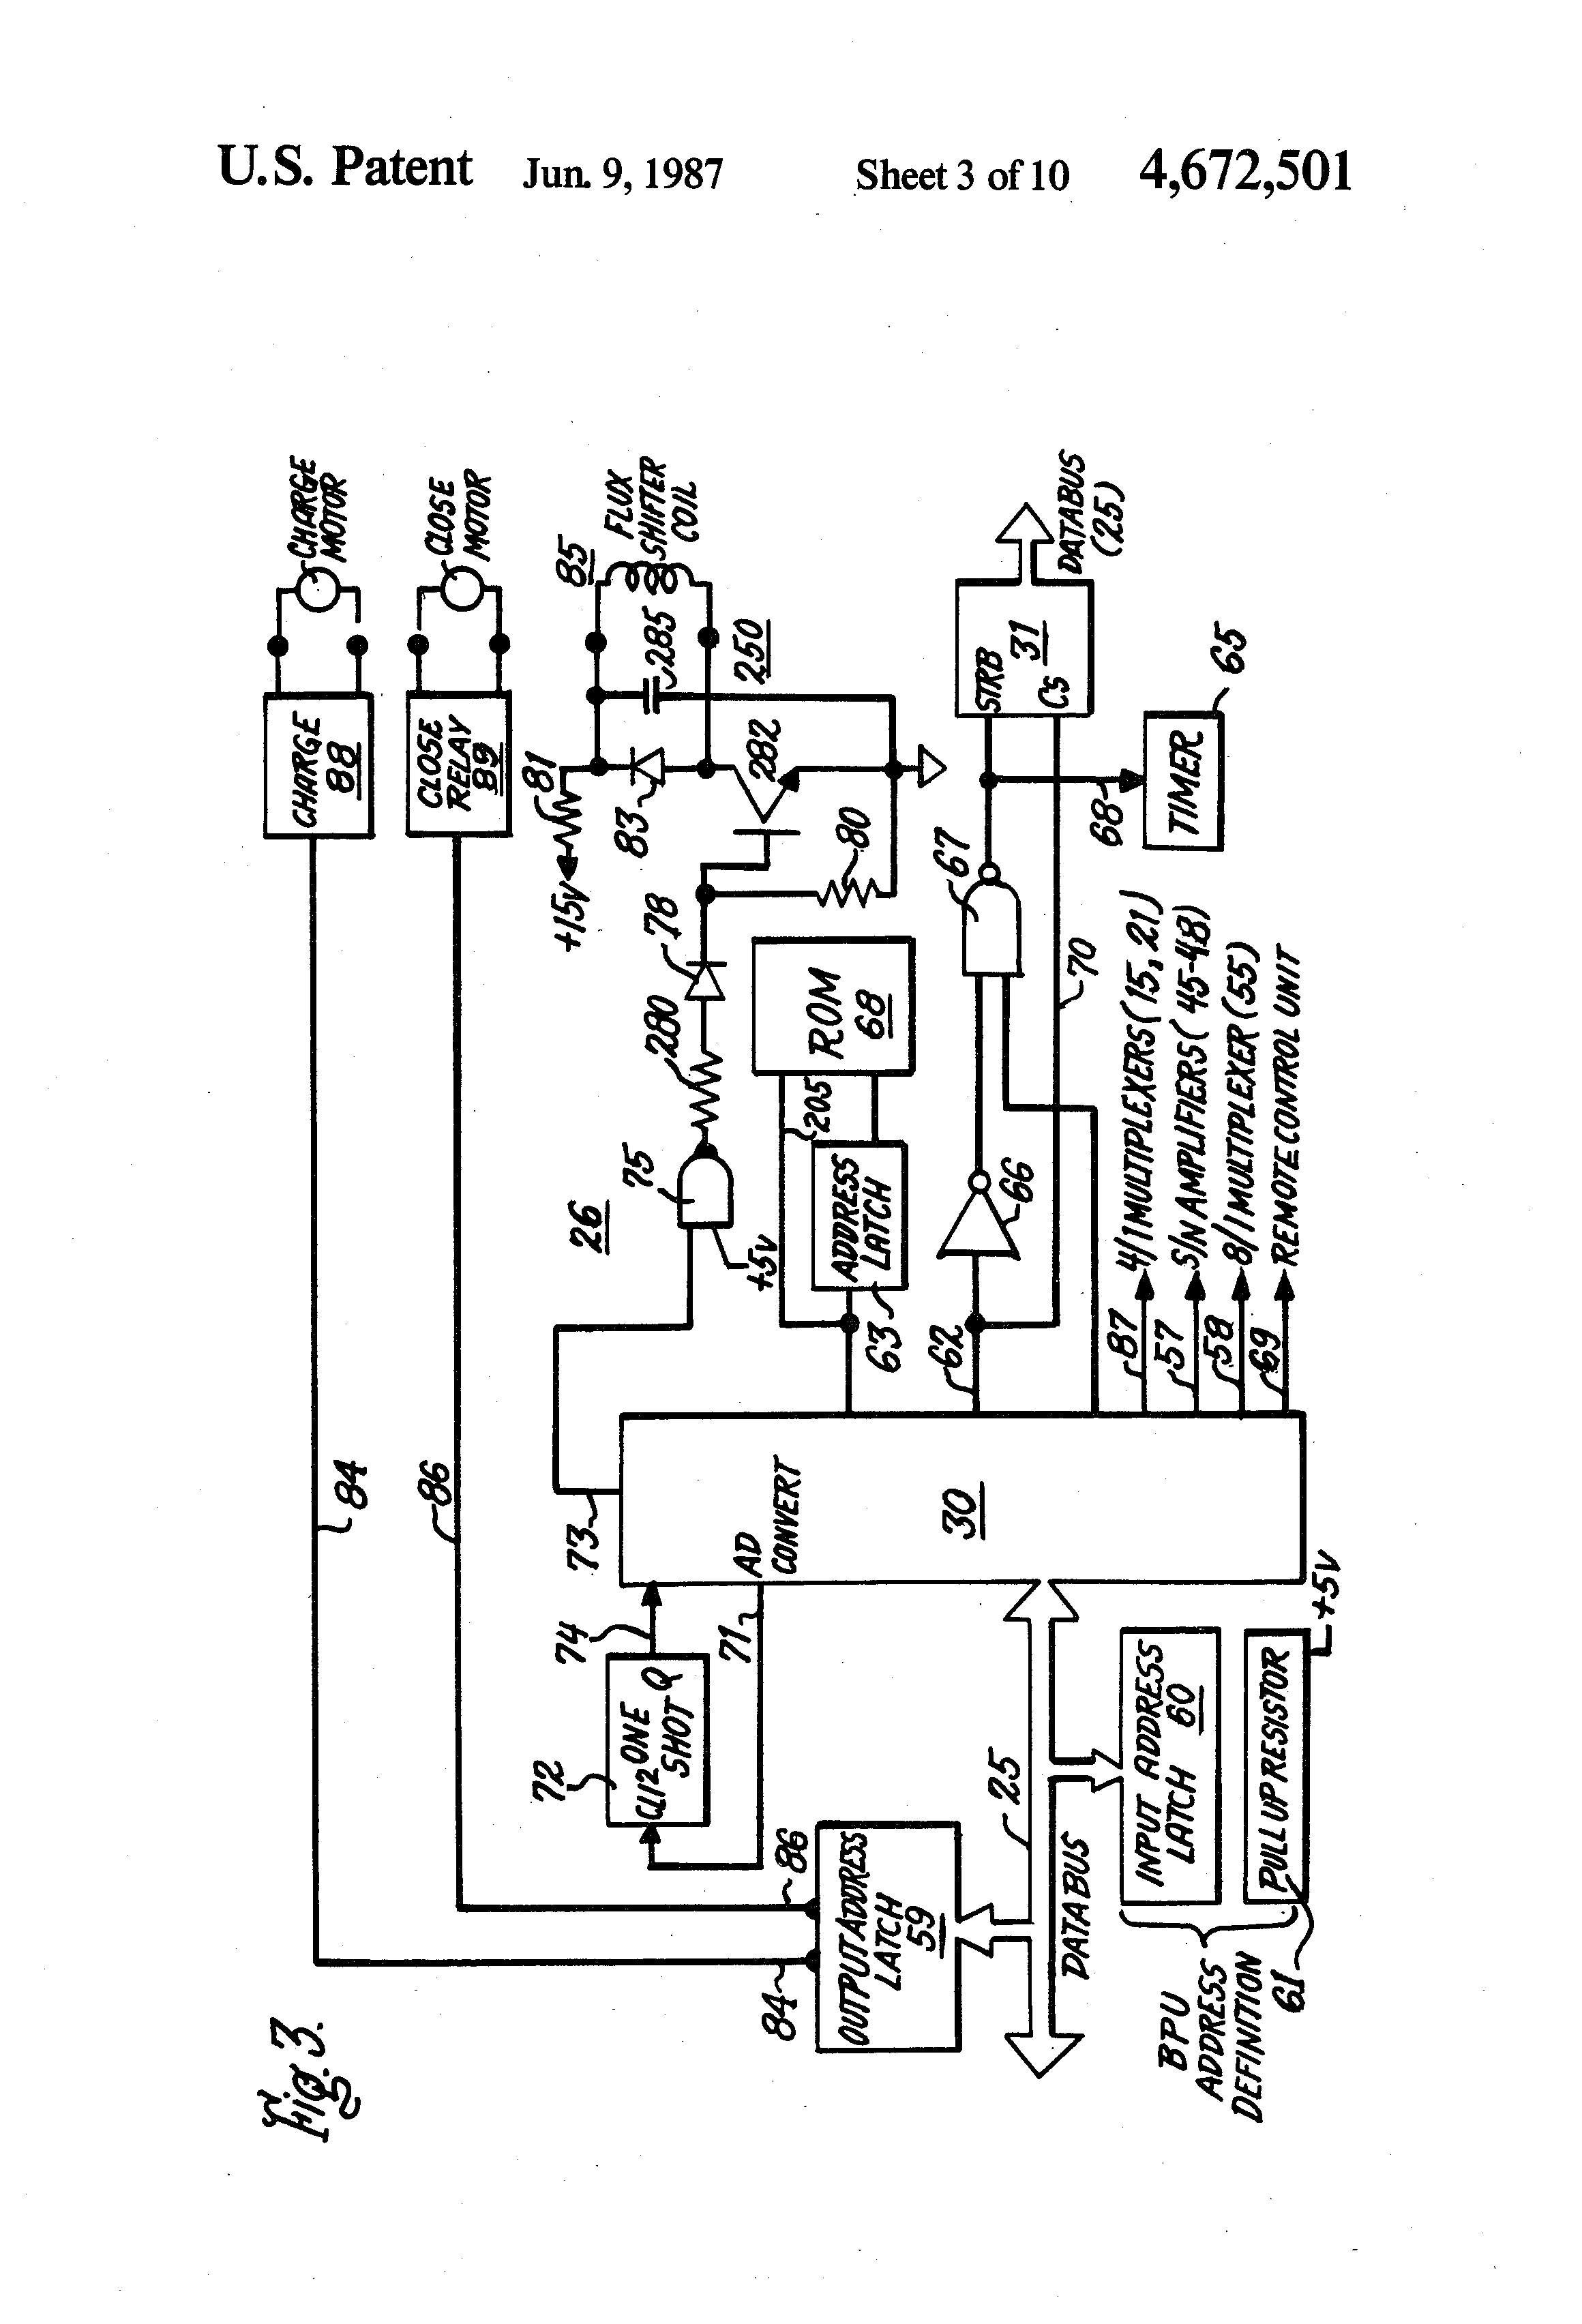 Shunt Trip Breaker Wiring Diagram For Hood Wiring Diagrams - Ge shunt trip breaker wiring diagram